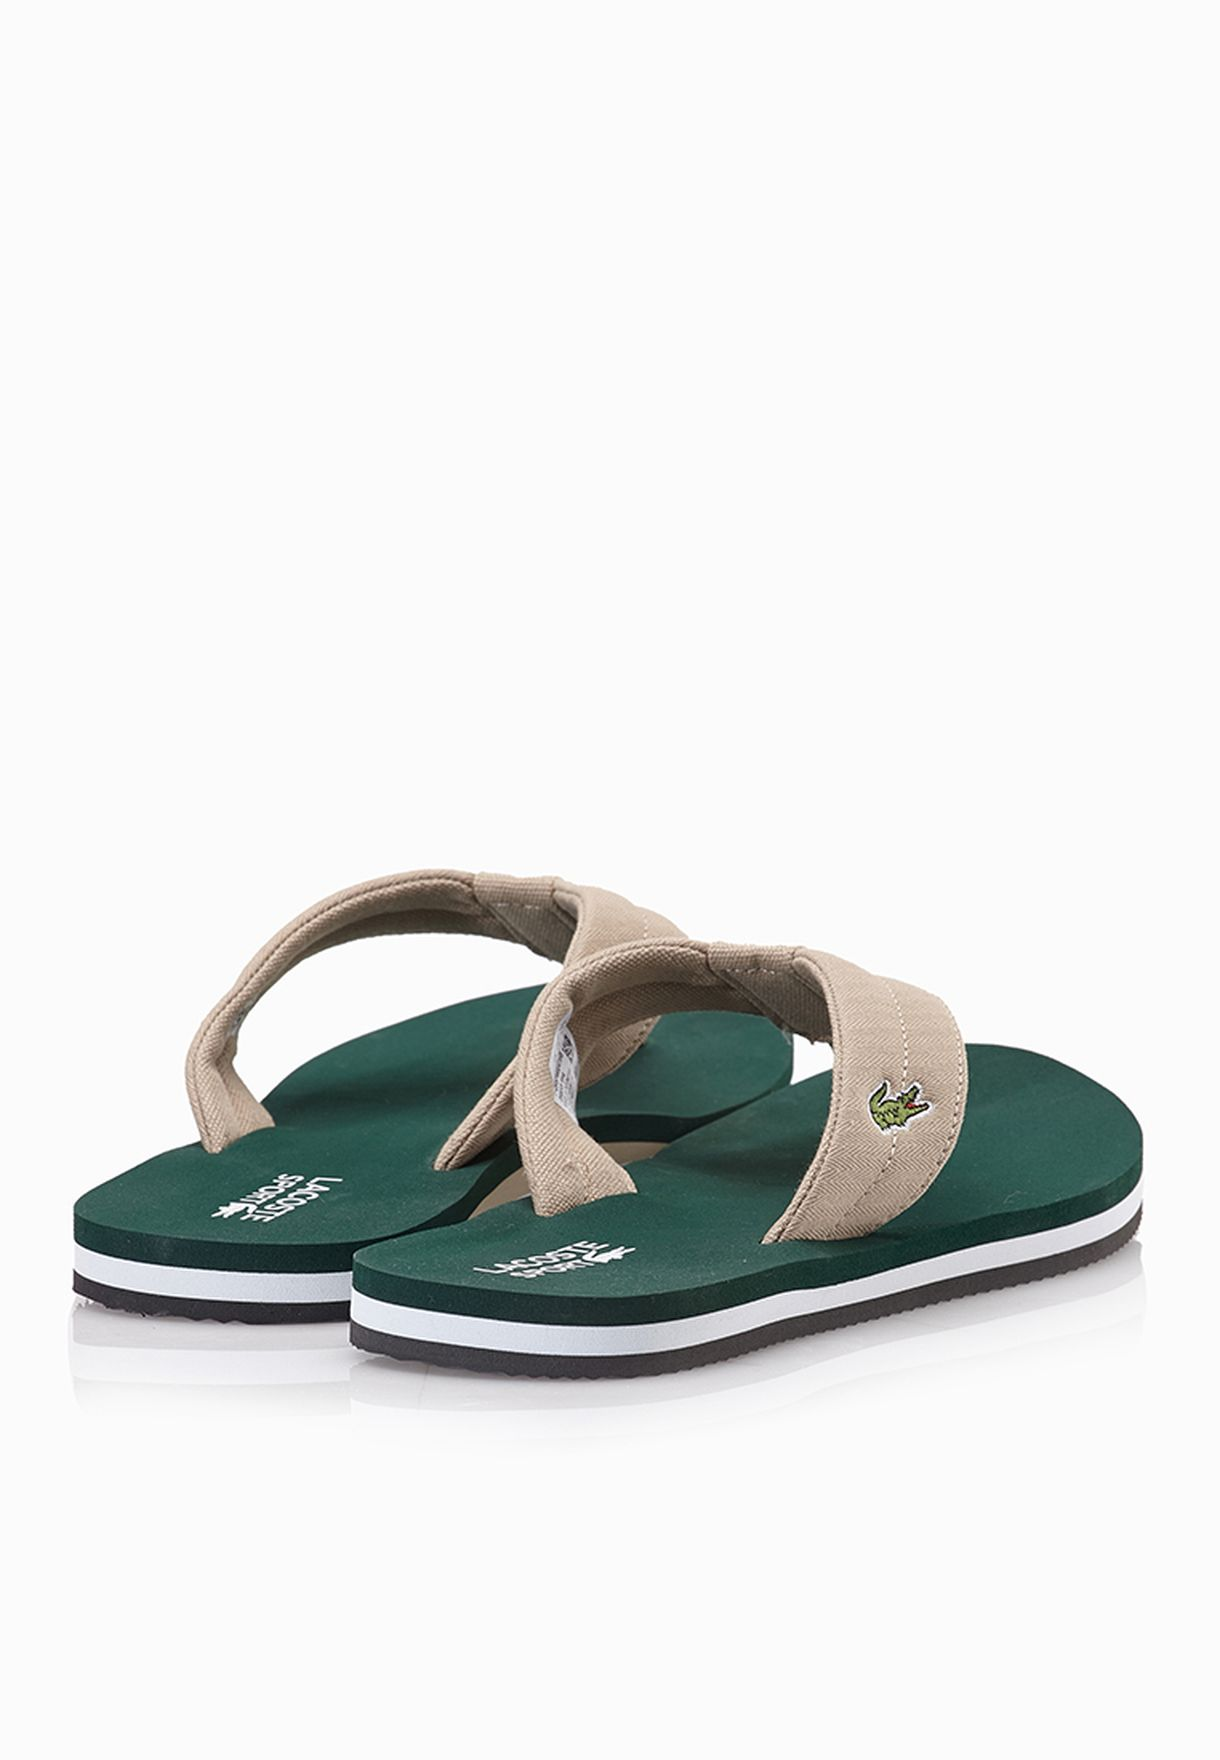 e5fd50c27 Shop Lacoste green Randle TBR Flip Flops 29SPM0041-1R8 for Men ...